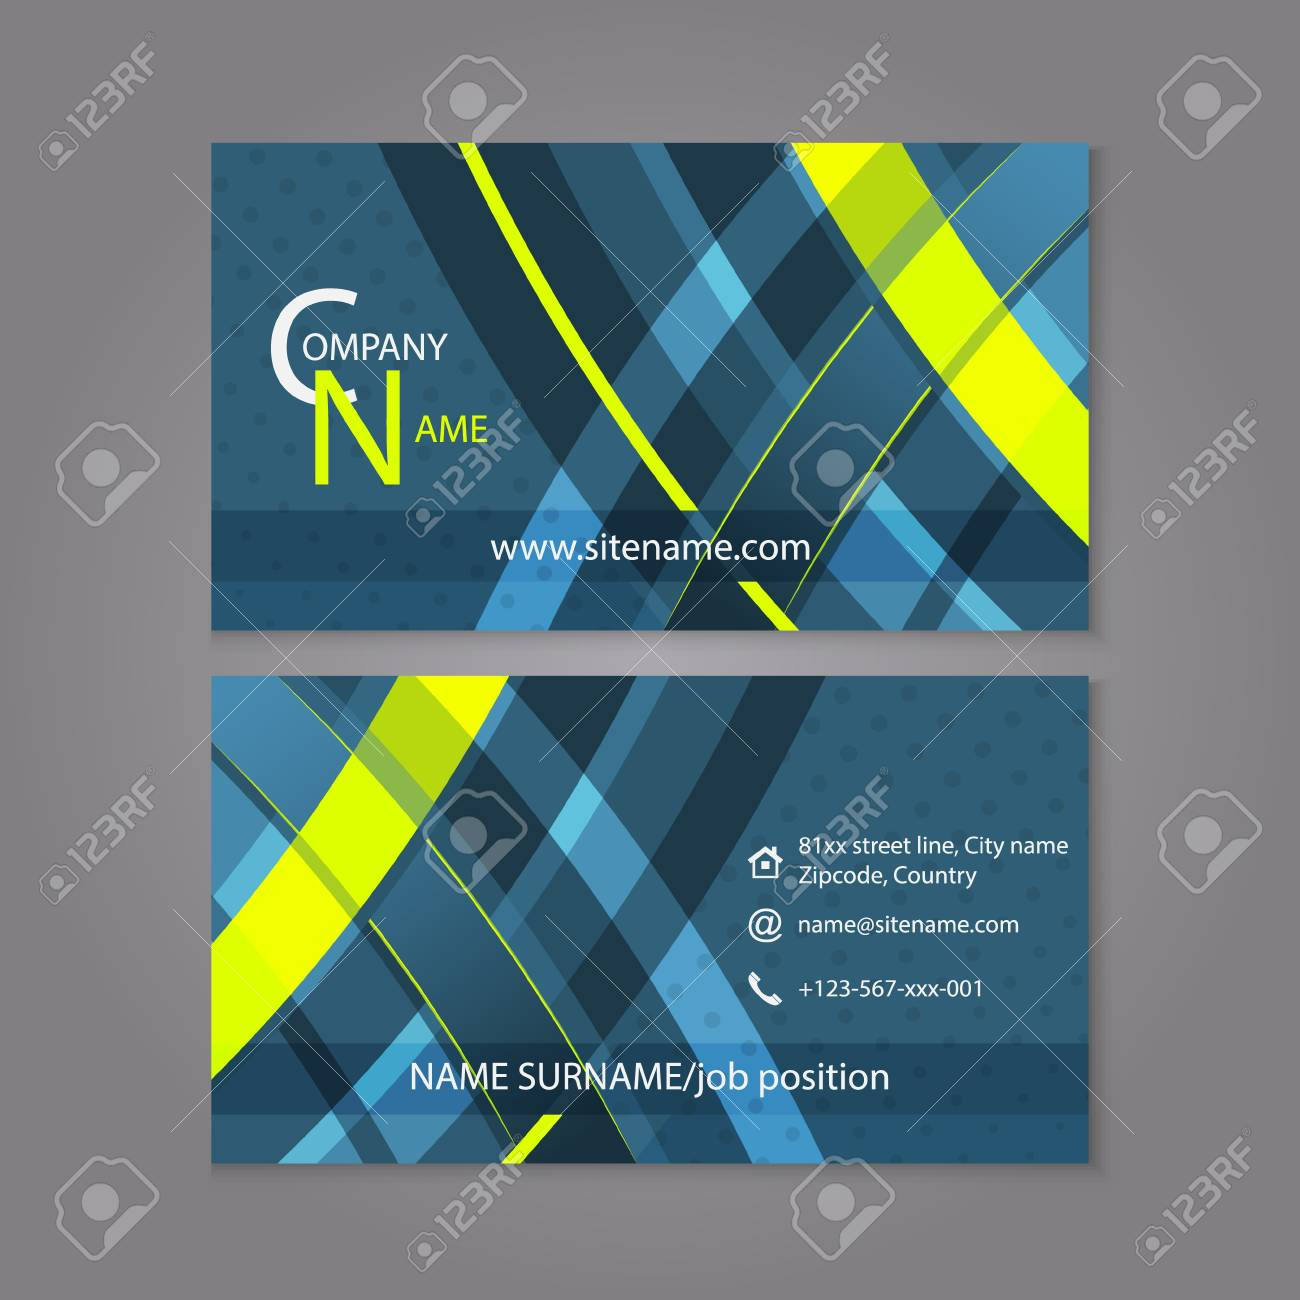 Professional business card template design editable vector professional business card template design editable vector illustration for company or individual presentation stock flashek Choice Image